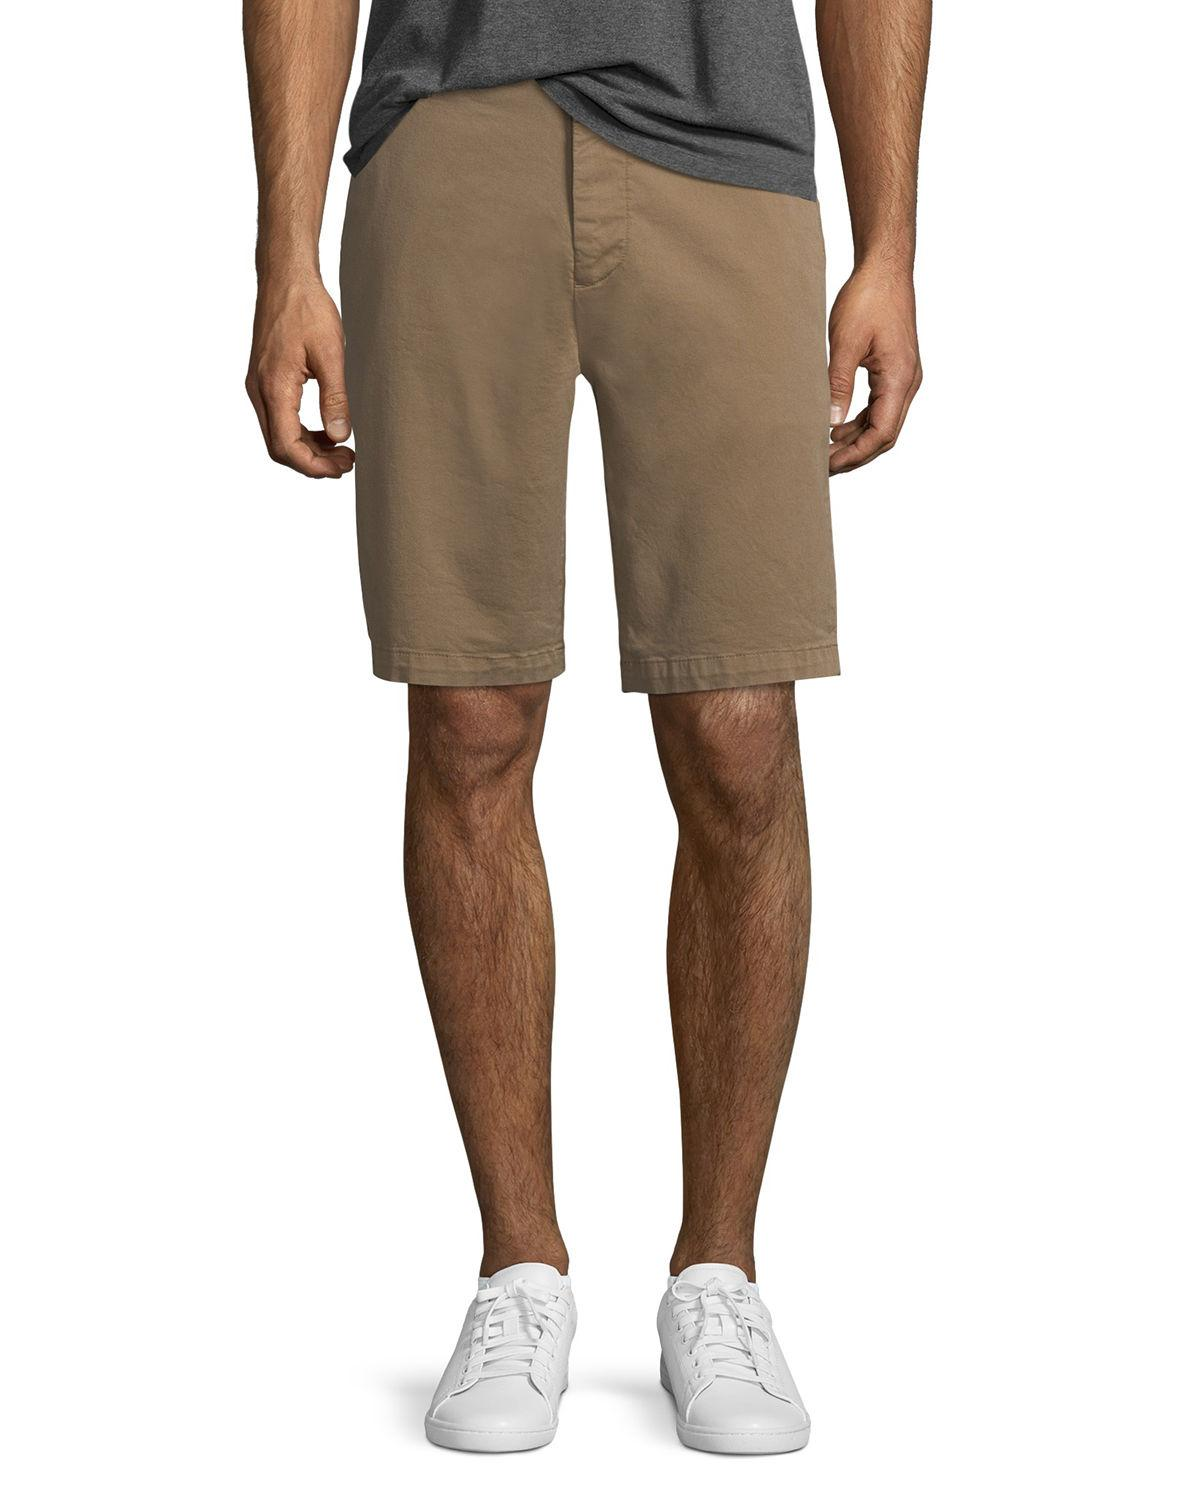 7 For All Mankind Men's Stretch Chino Shorts In Rich Khaki